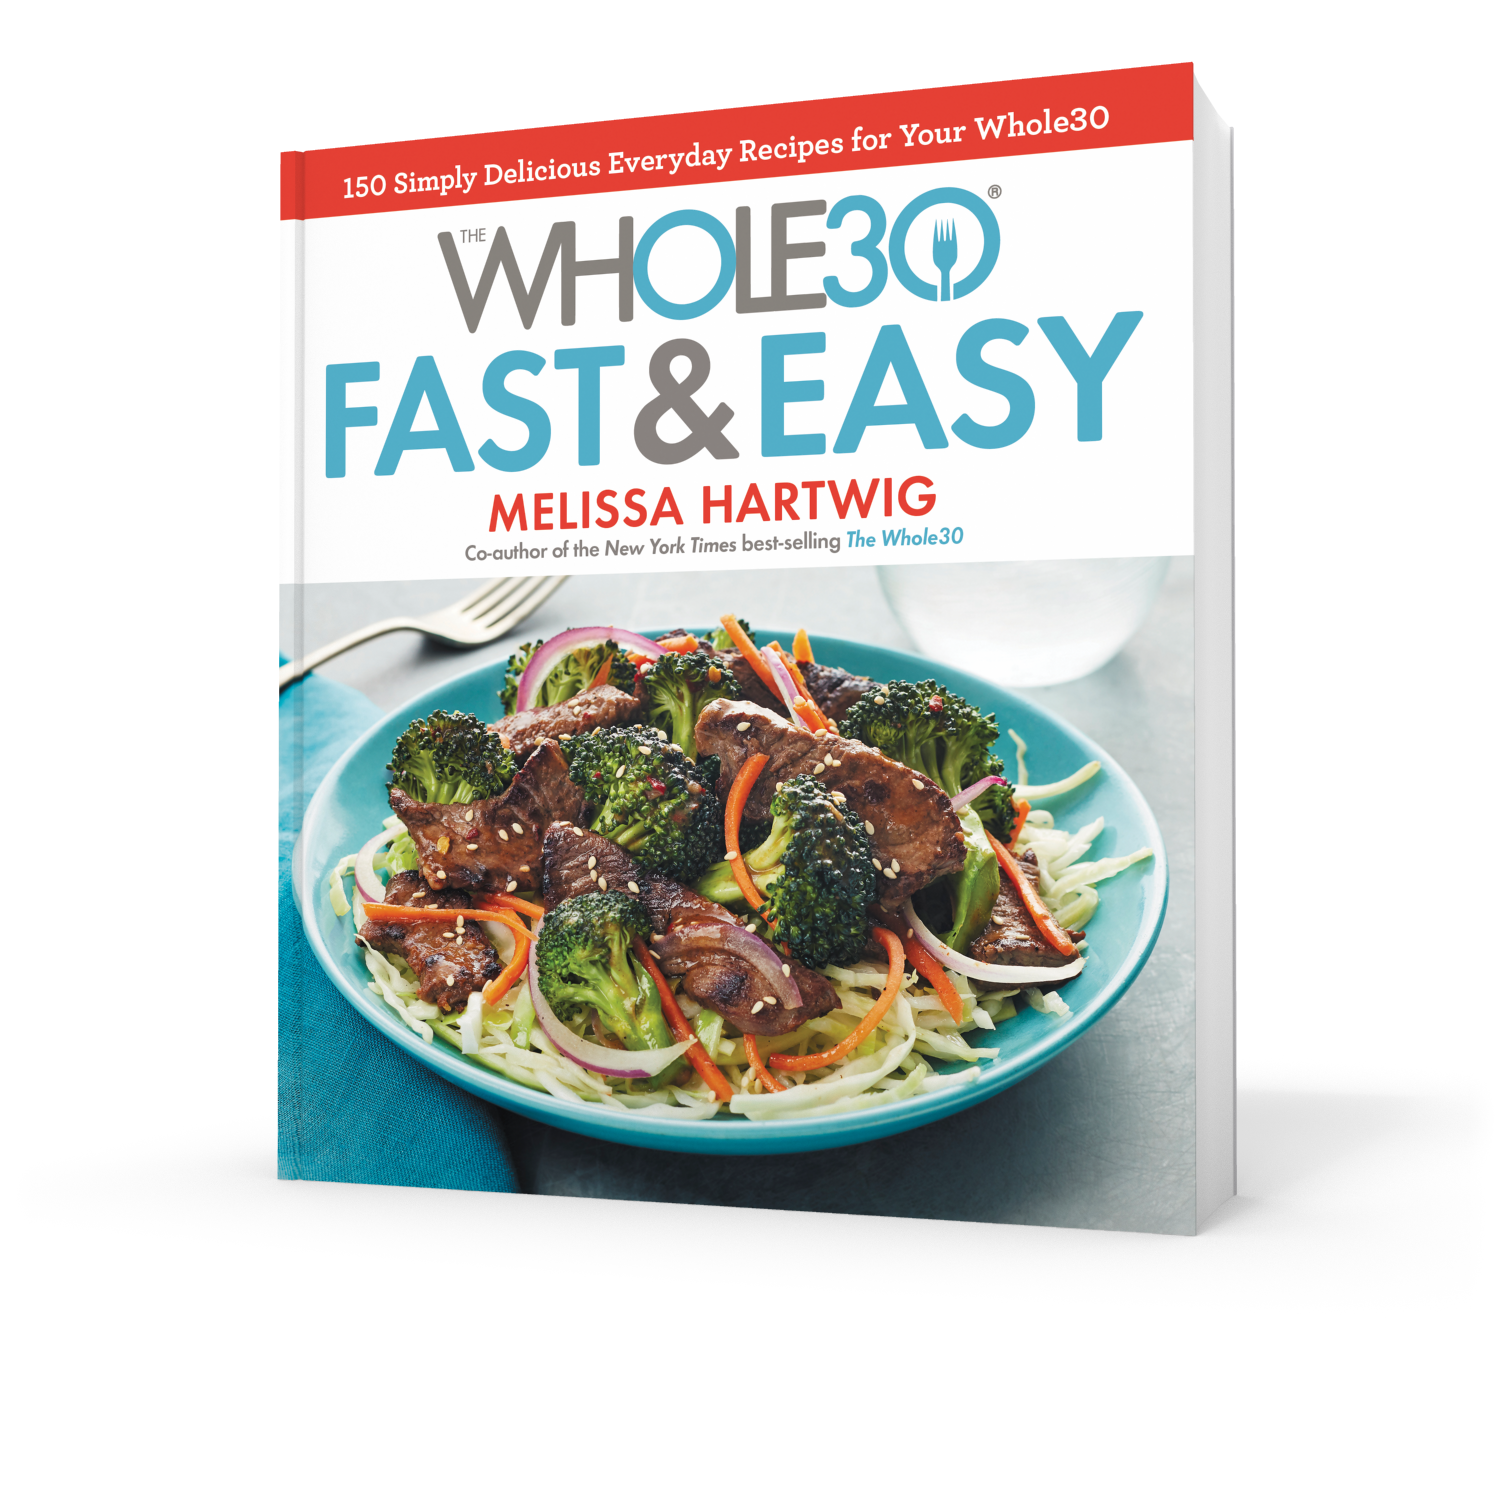 The whole30 fast easy cookbook the whole30 program the whole30 fast easy cookbook forumfinder Images